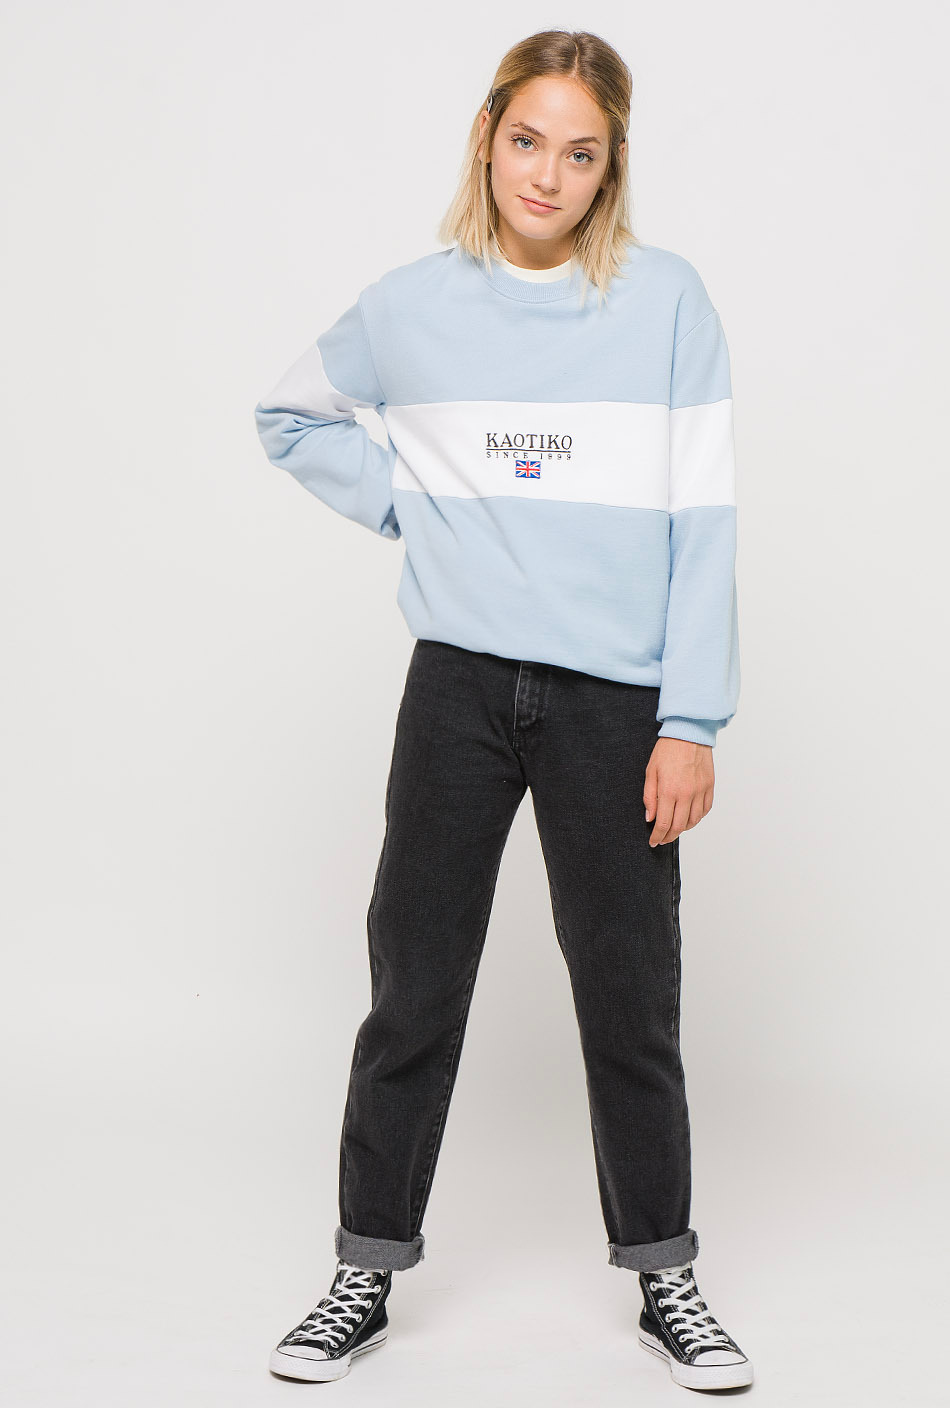 Brooke blue/white sweatshirt